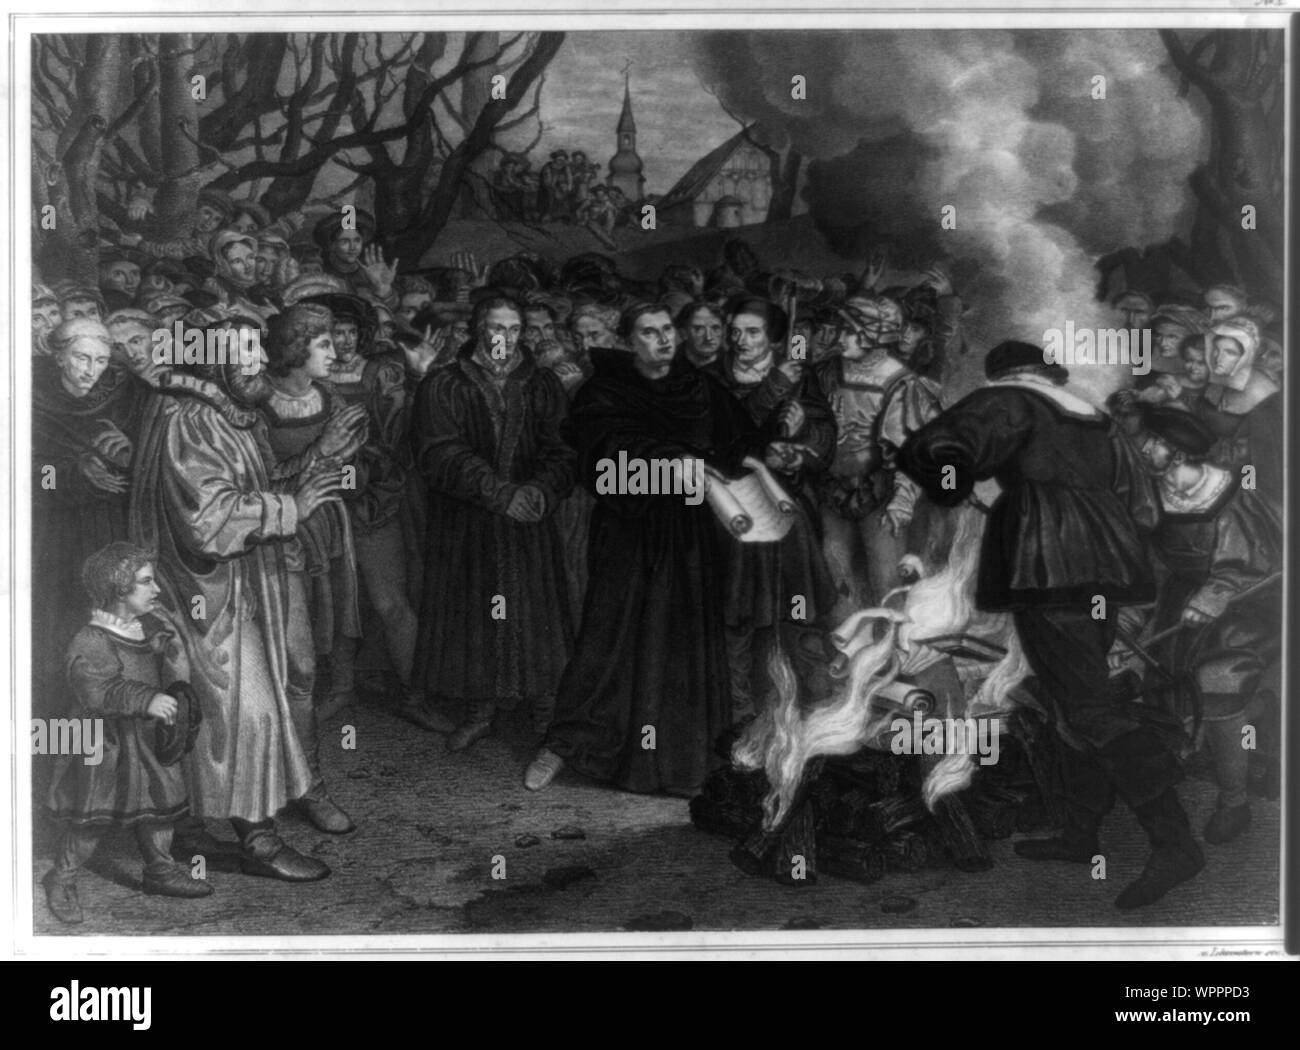 Luther verbrennt die päpstliche Bulle und das canonishe Recht vor Witteneberg, am 10 December 1520 Abstract: Print shows a small crowd gathered to watch Martin Luther burn the papal bull Exsurge Domine from Leo X (condemning Luther's ideas and threatening him with excommunication) and the canon law in front of a church in Wittenberg. Stock Photo